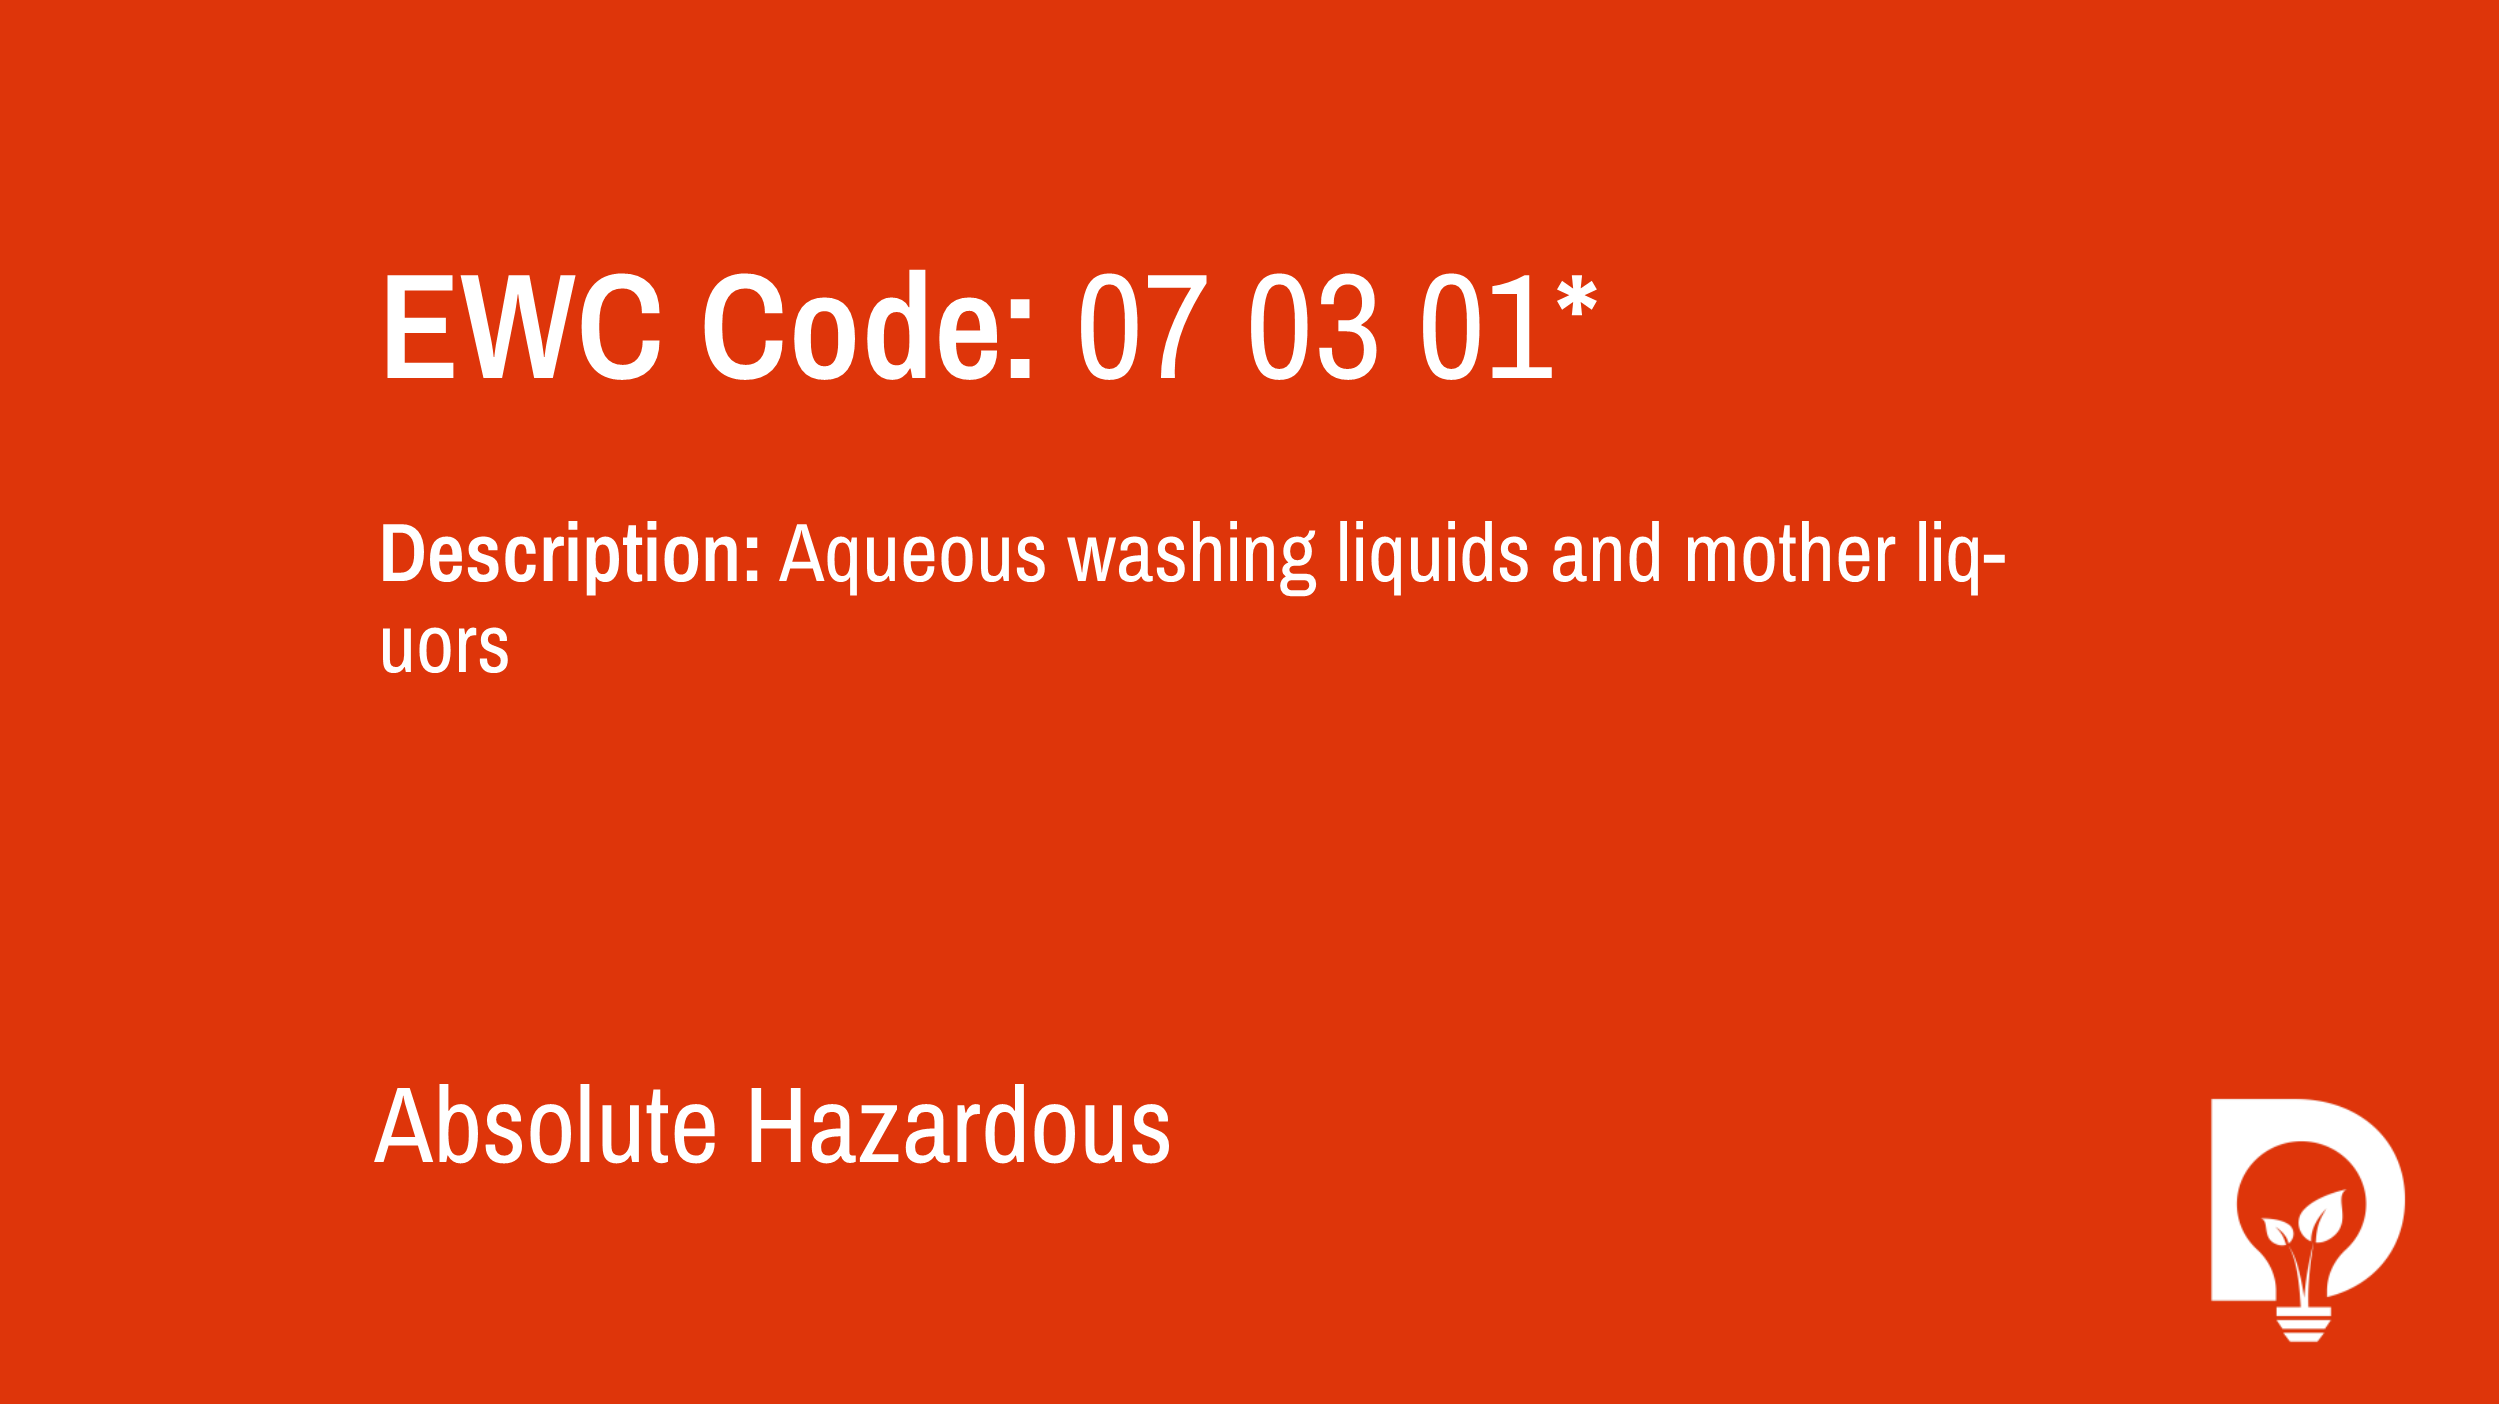 EWC Code: 07 03 01* - aqueous washing liquids and mother liquors. Type: Absolute Hazardous. Image by Dsposal